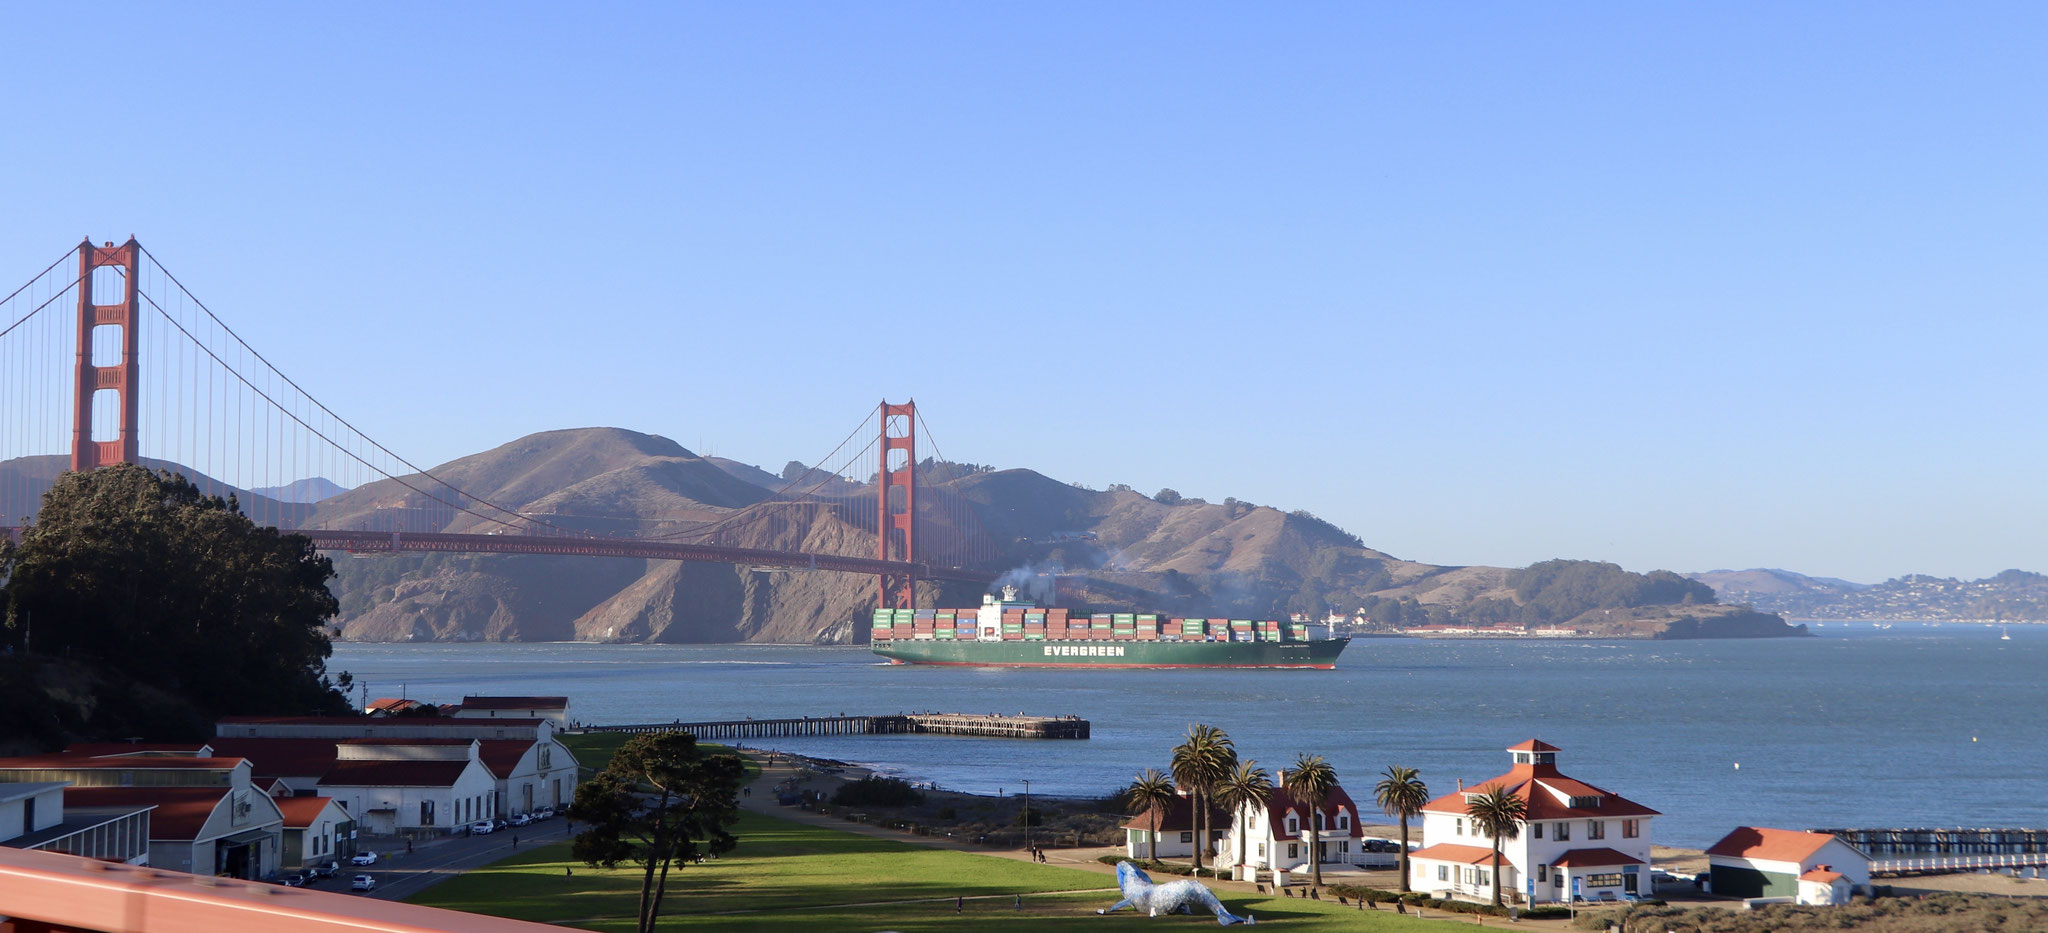 this picture was a lucky shot straight out of our truck as we head to cross the golden gate bridge north